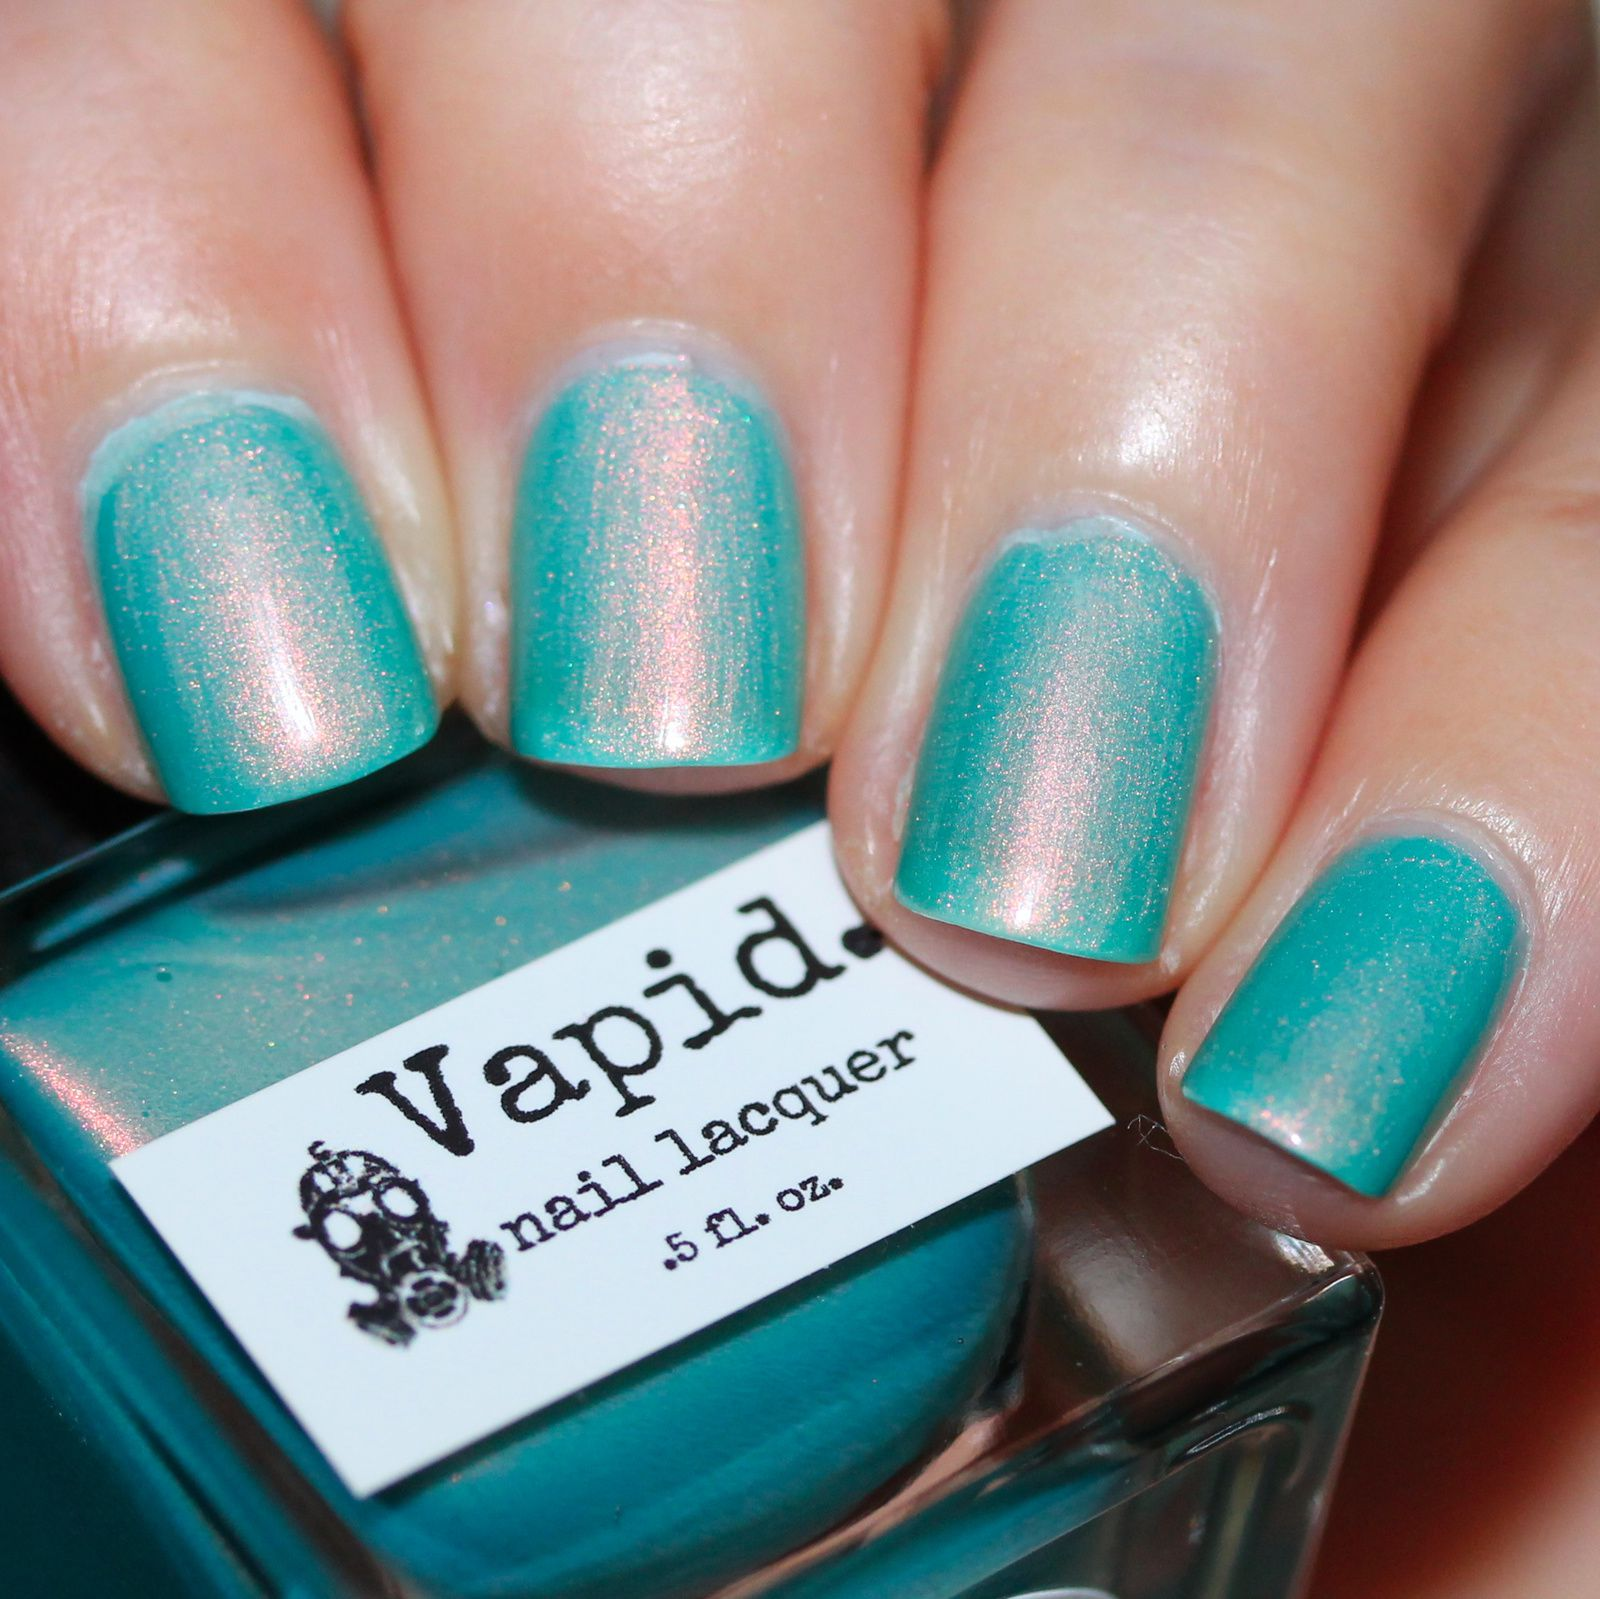 Sally Hansen Complete Care 4-in-1 Extra Moisturizing Nail Treatment / Vapid Lacquer Fish Out of Water / Native War Paints Hurry, Hurry!Top Coat